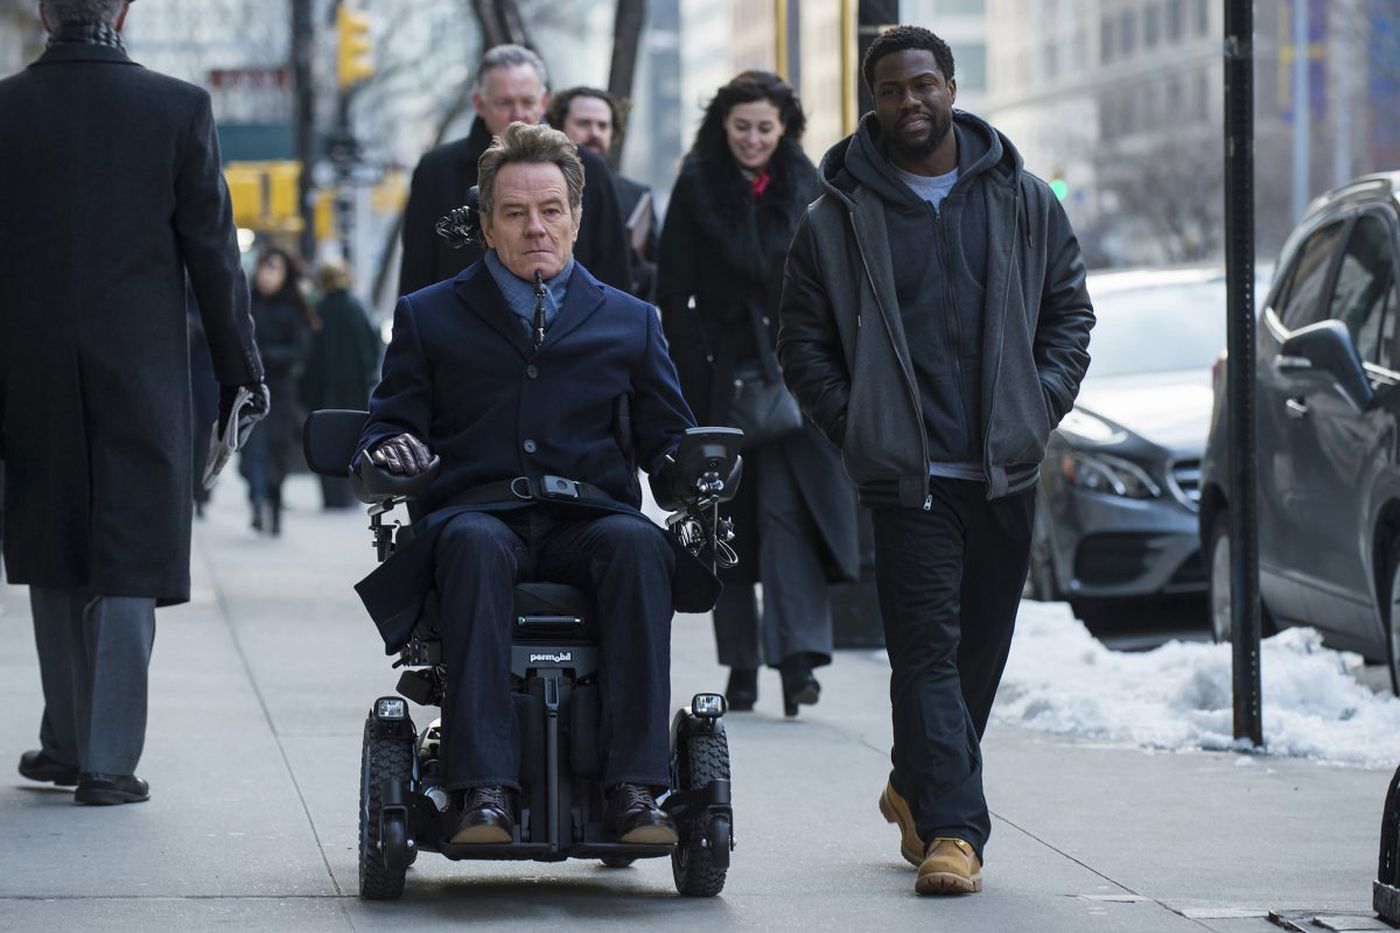 Philly-shot Kevin Hart, Bryan Cranston movie gets release date